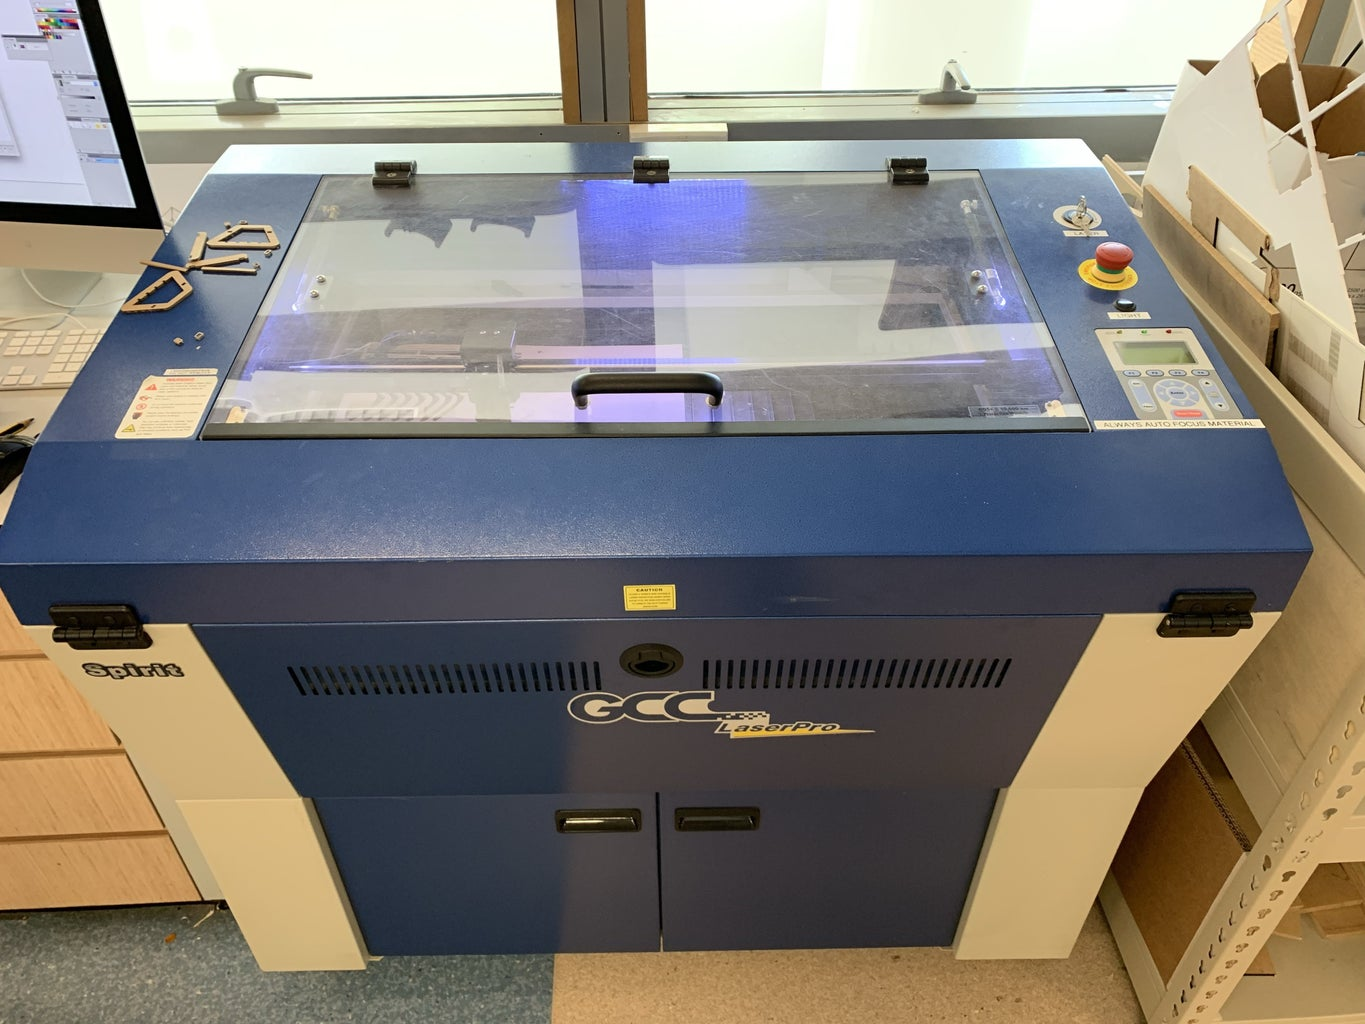 Setting Up the Laser Cutter + Material